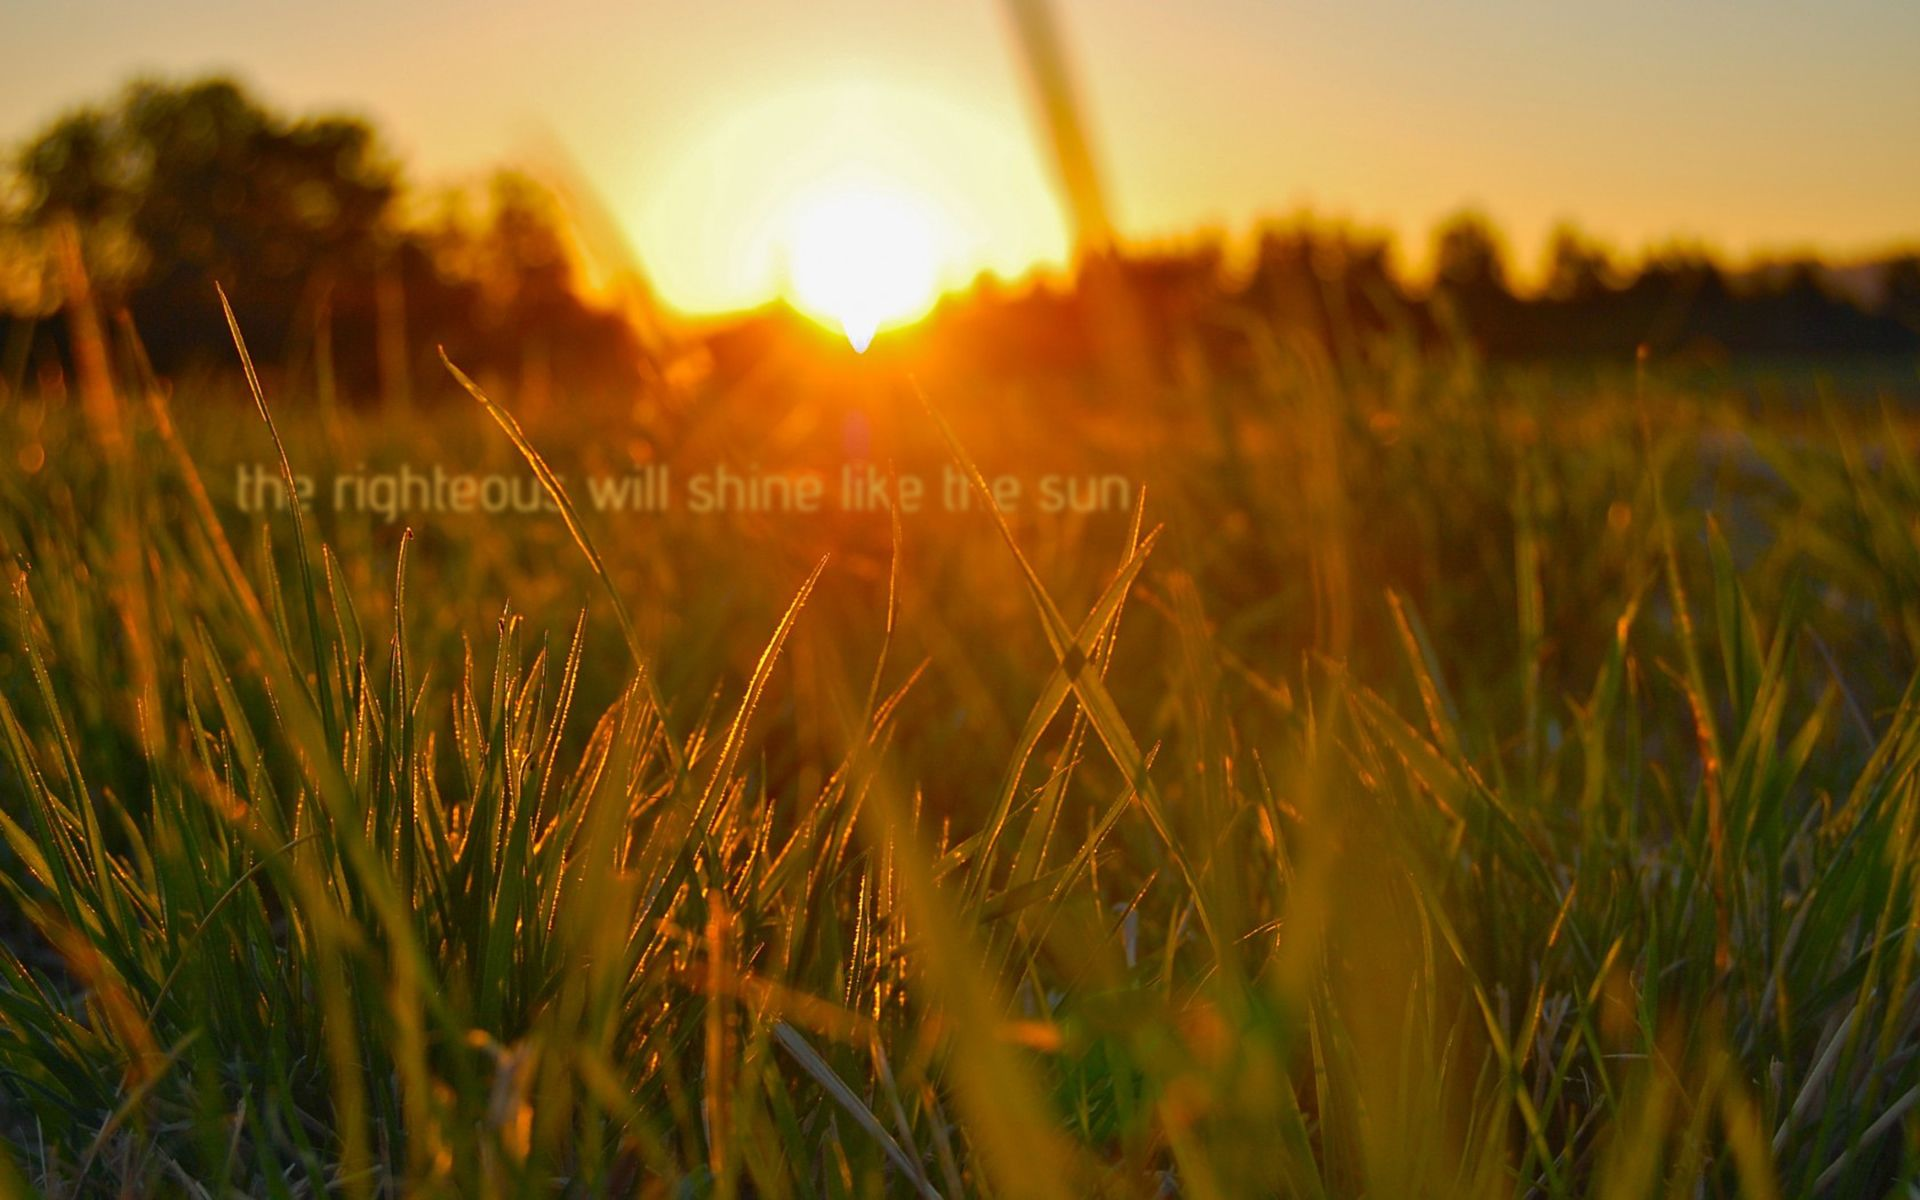 Then the righteous will shine like the sun in the kingdom